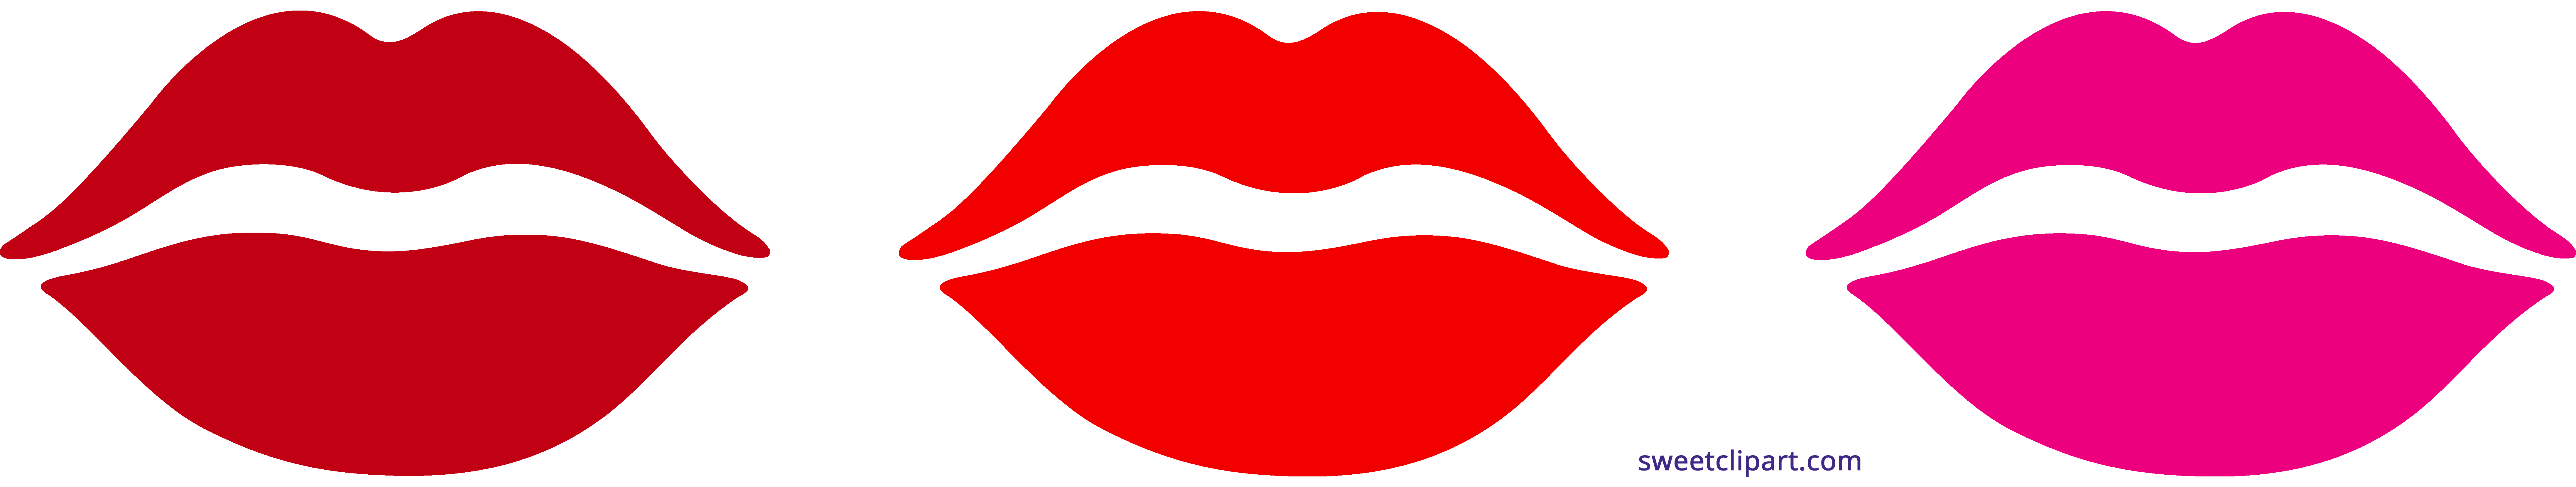 lips kisses clipart sweet clip art rh m sweetclipart com blowing kisses clipart free blowing kisses clipart